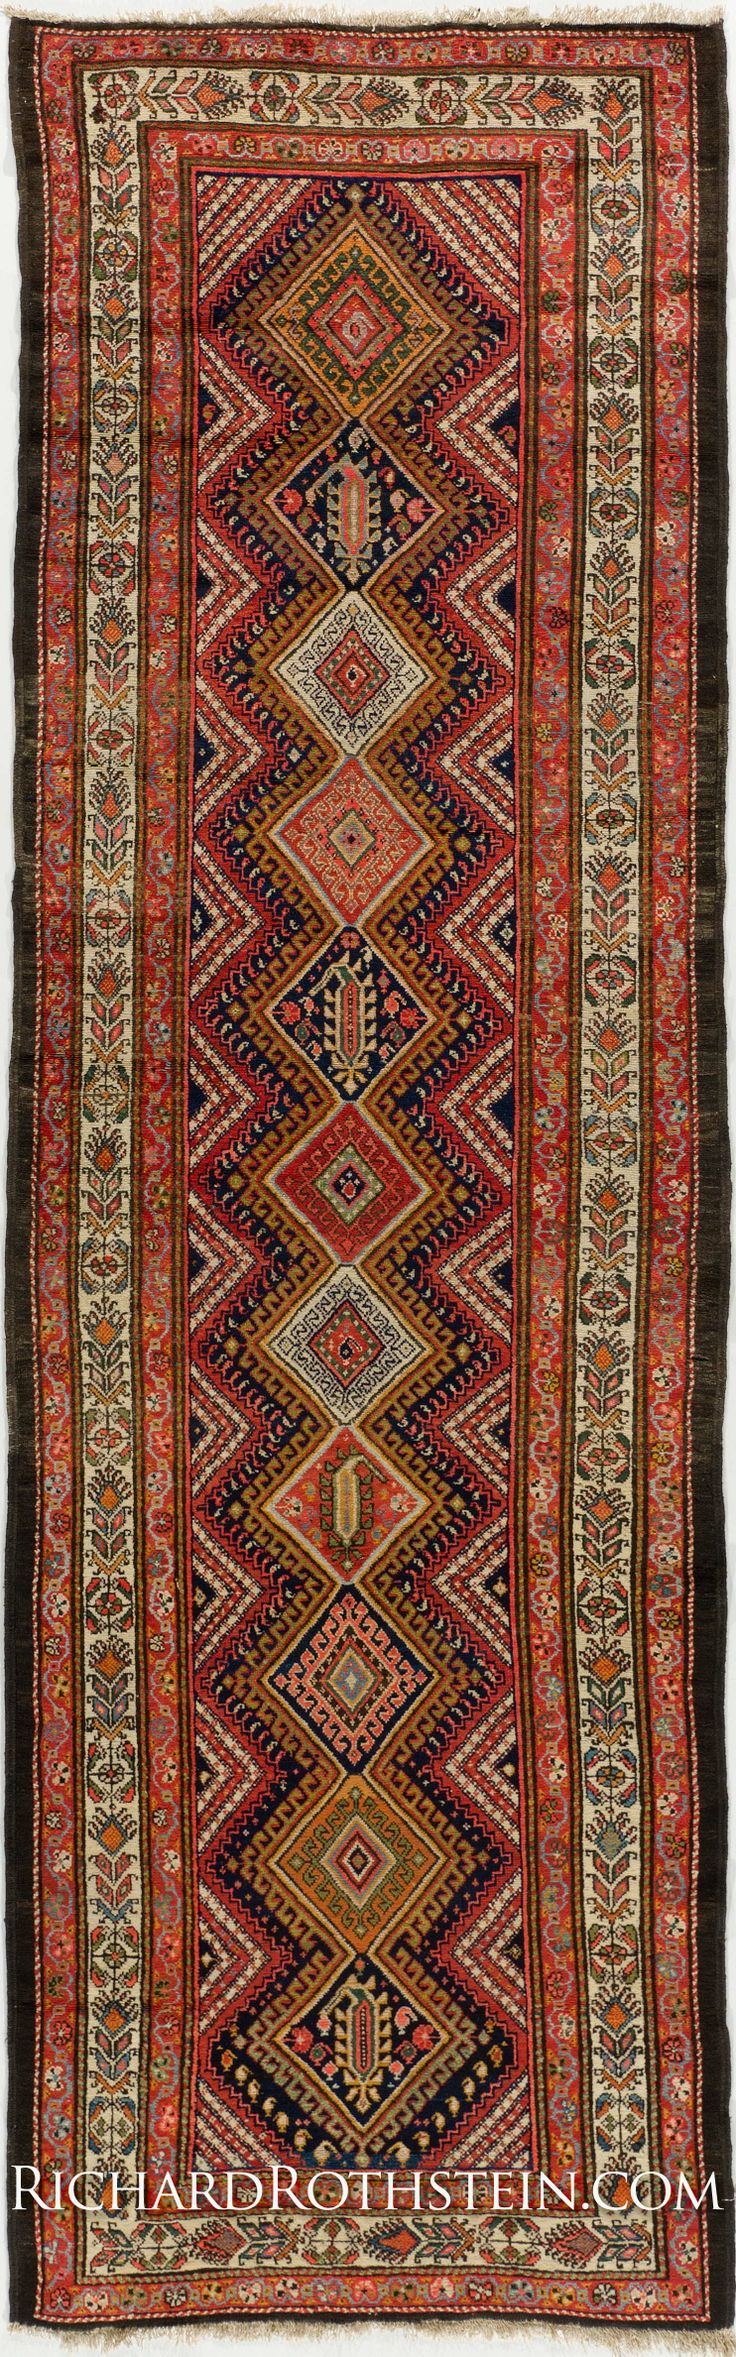 200 Best Images About Antique Rugs On Pinterest Antiques